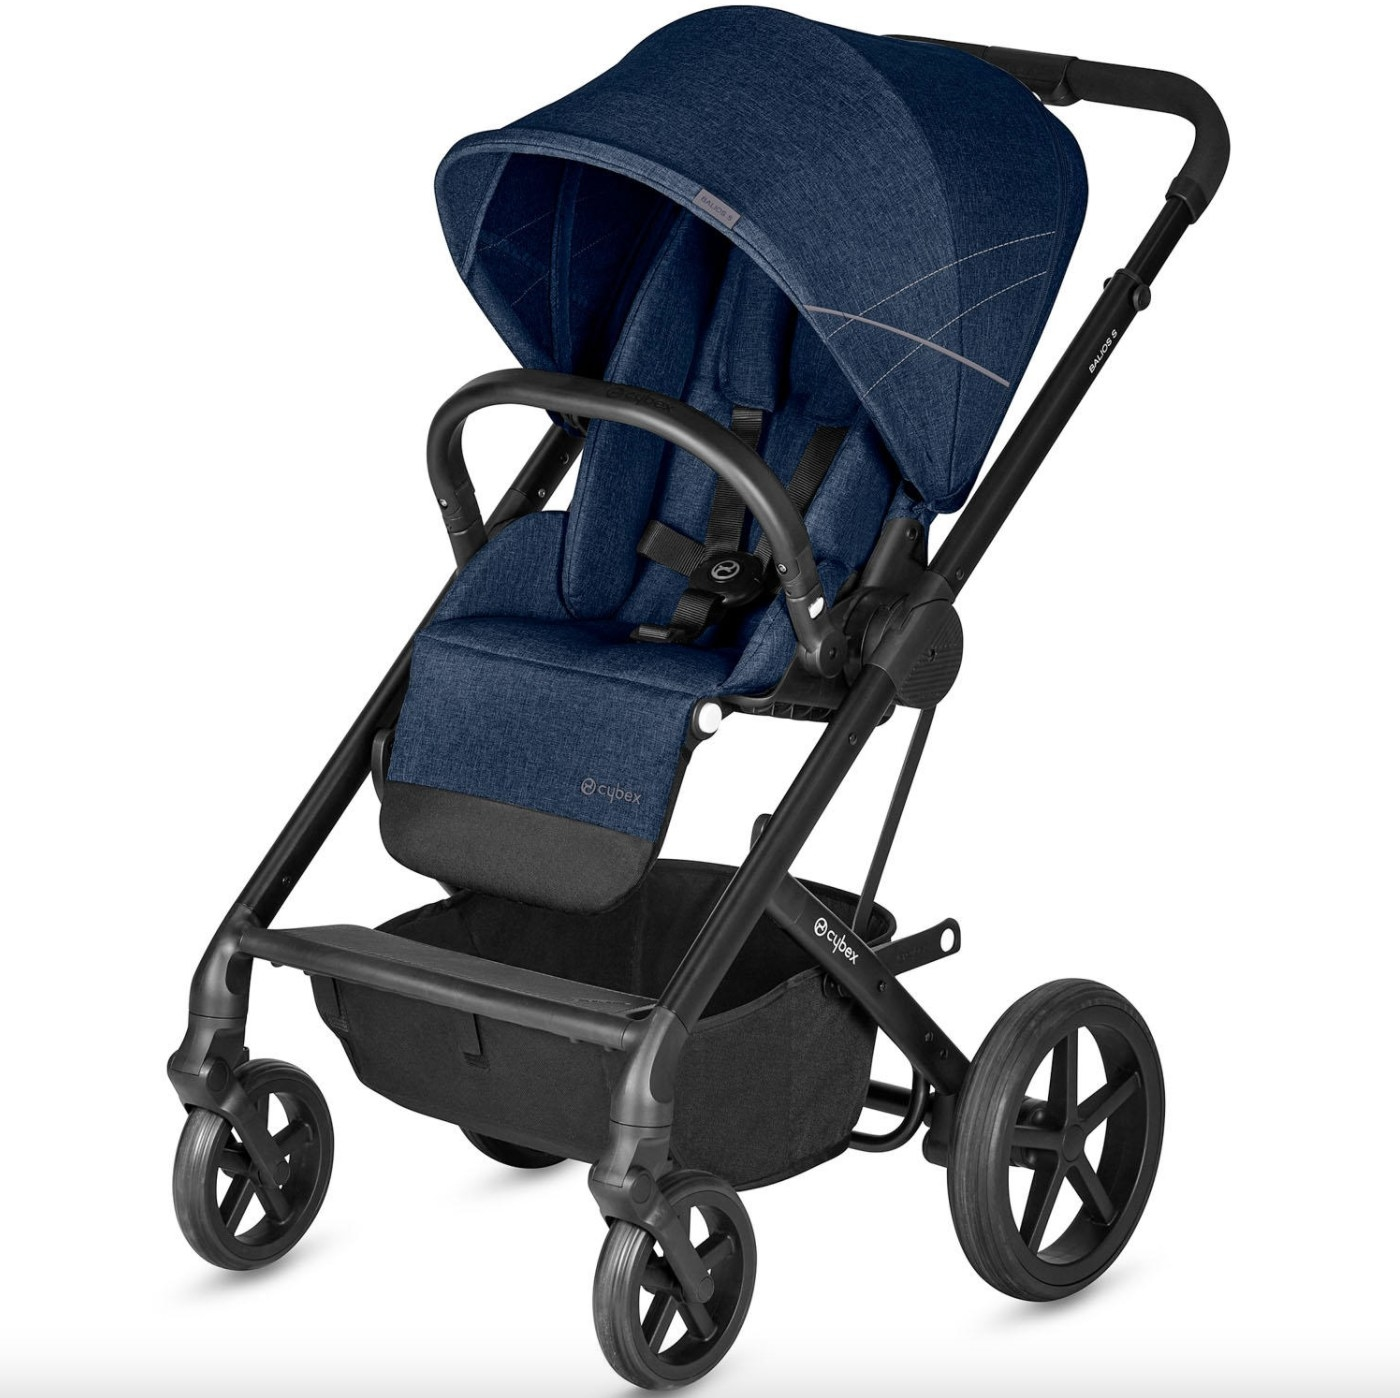 The baby stroller in denim blue with black hardware and wheels